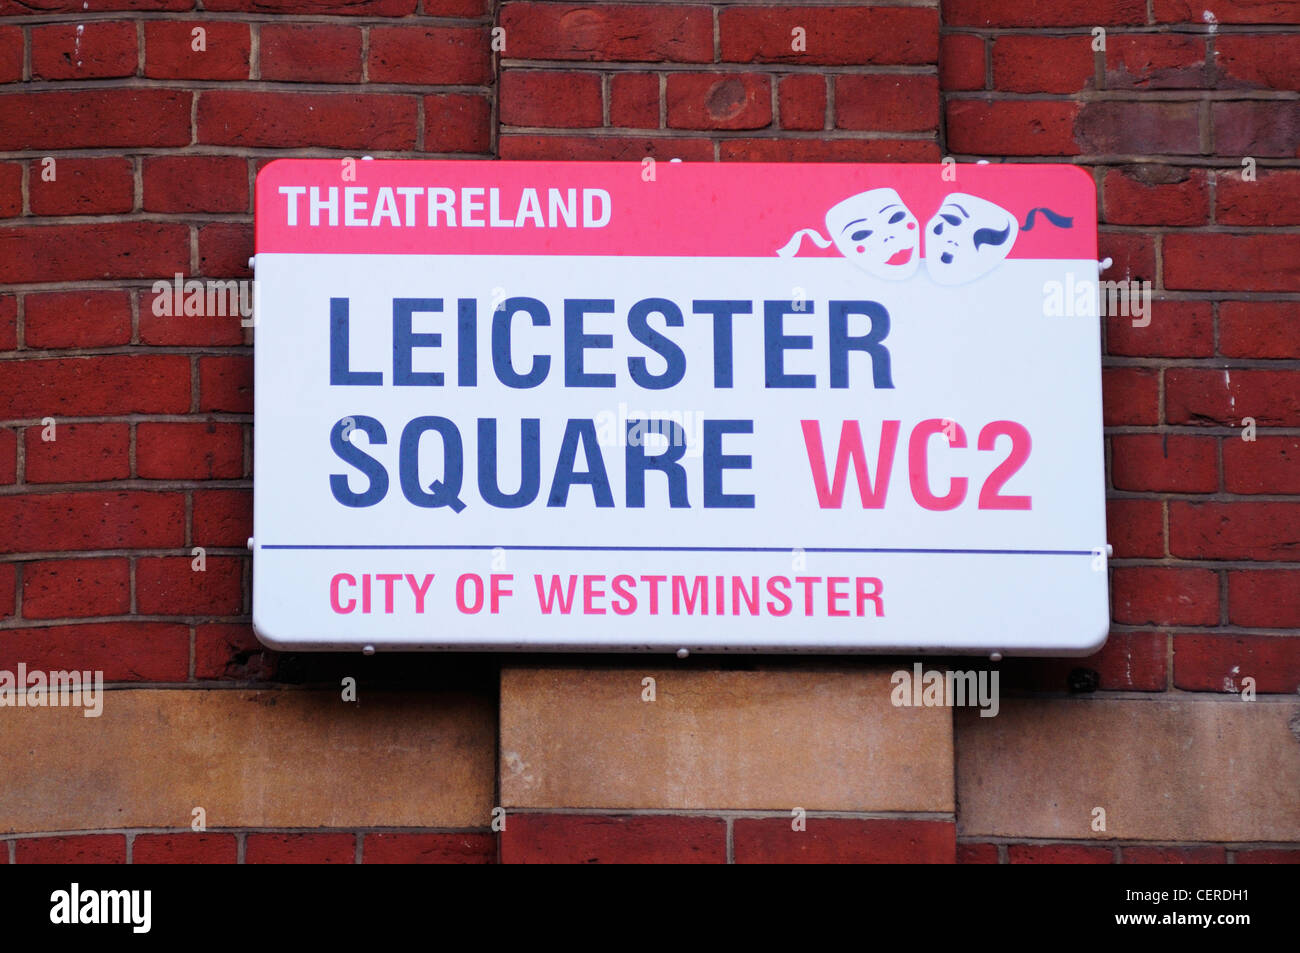 Theatreland Leicester Square WC2 Street Sign. - Stock Image